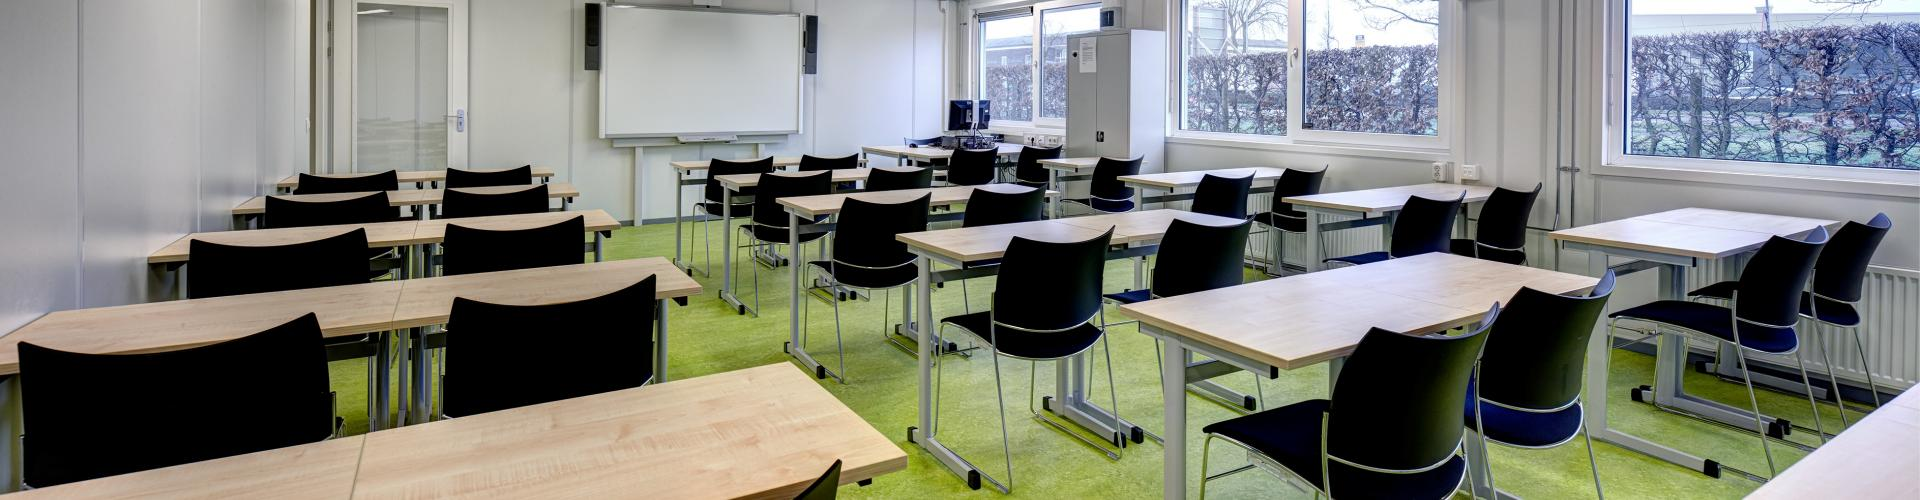 Schooltafels en schoolstoelen HZ University of Applied Sciences